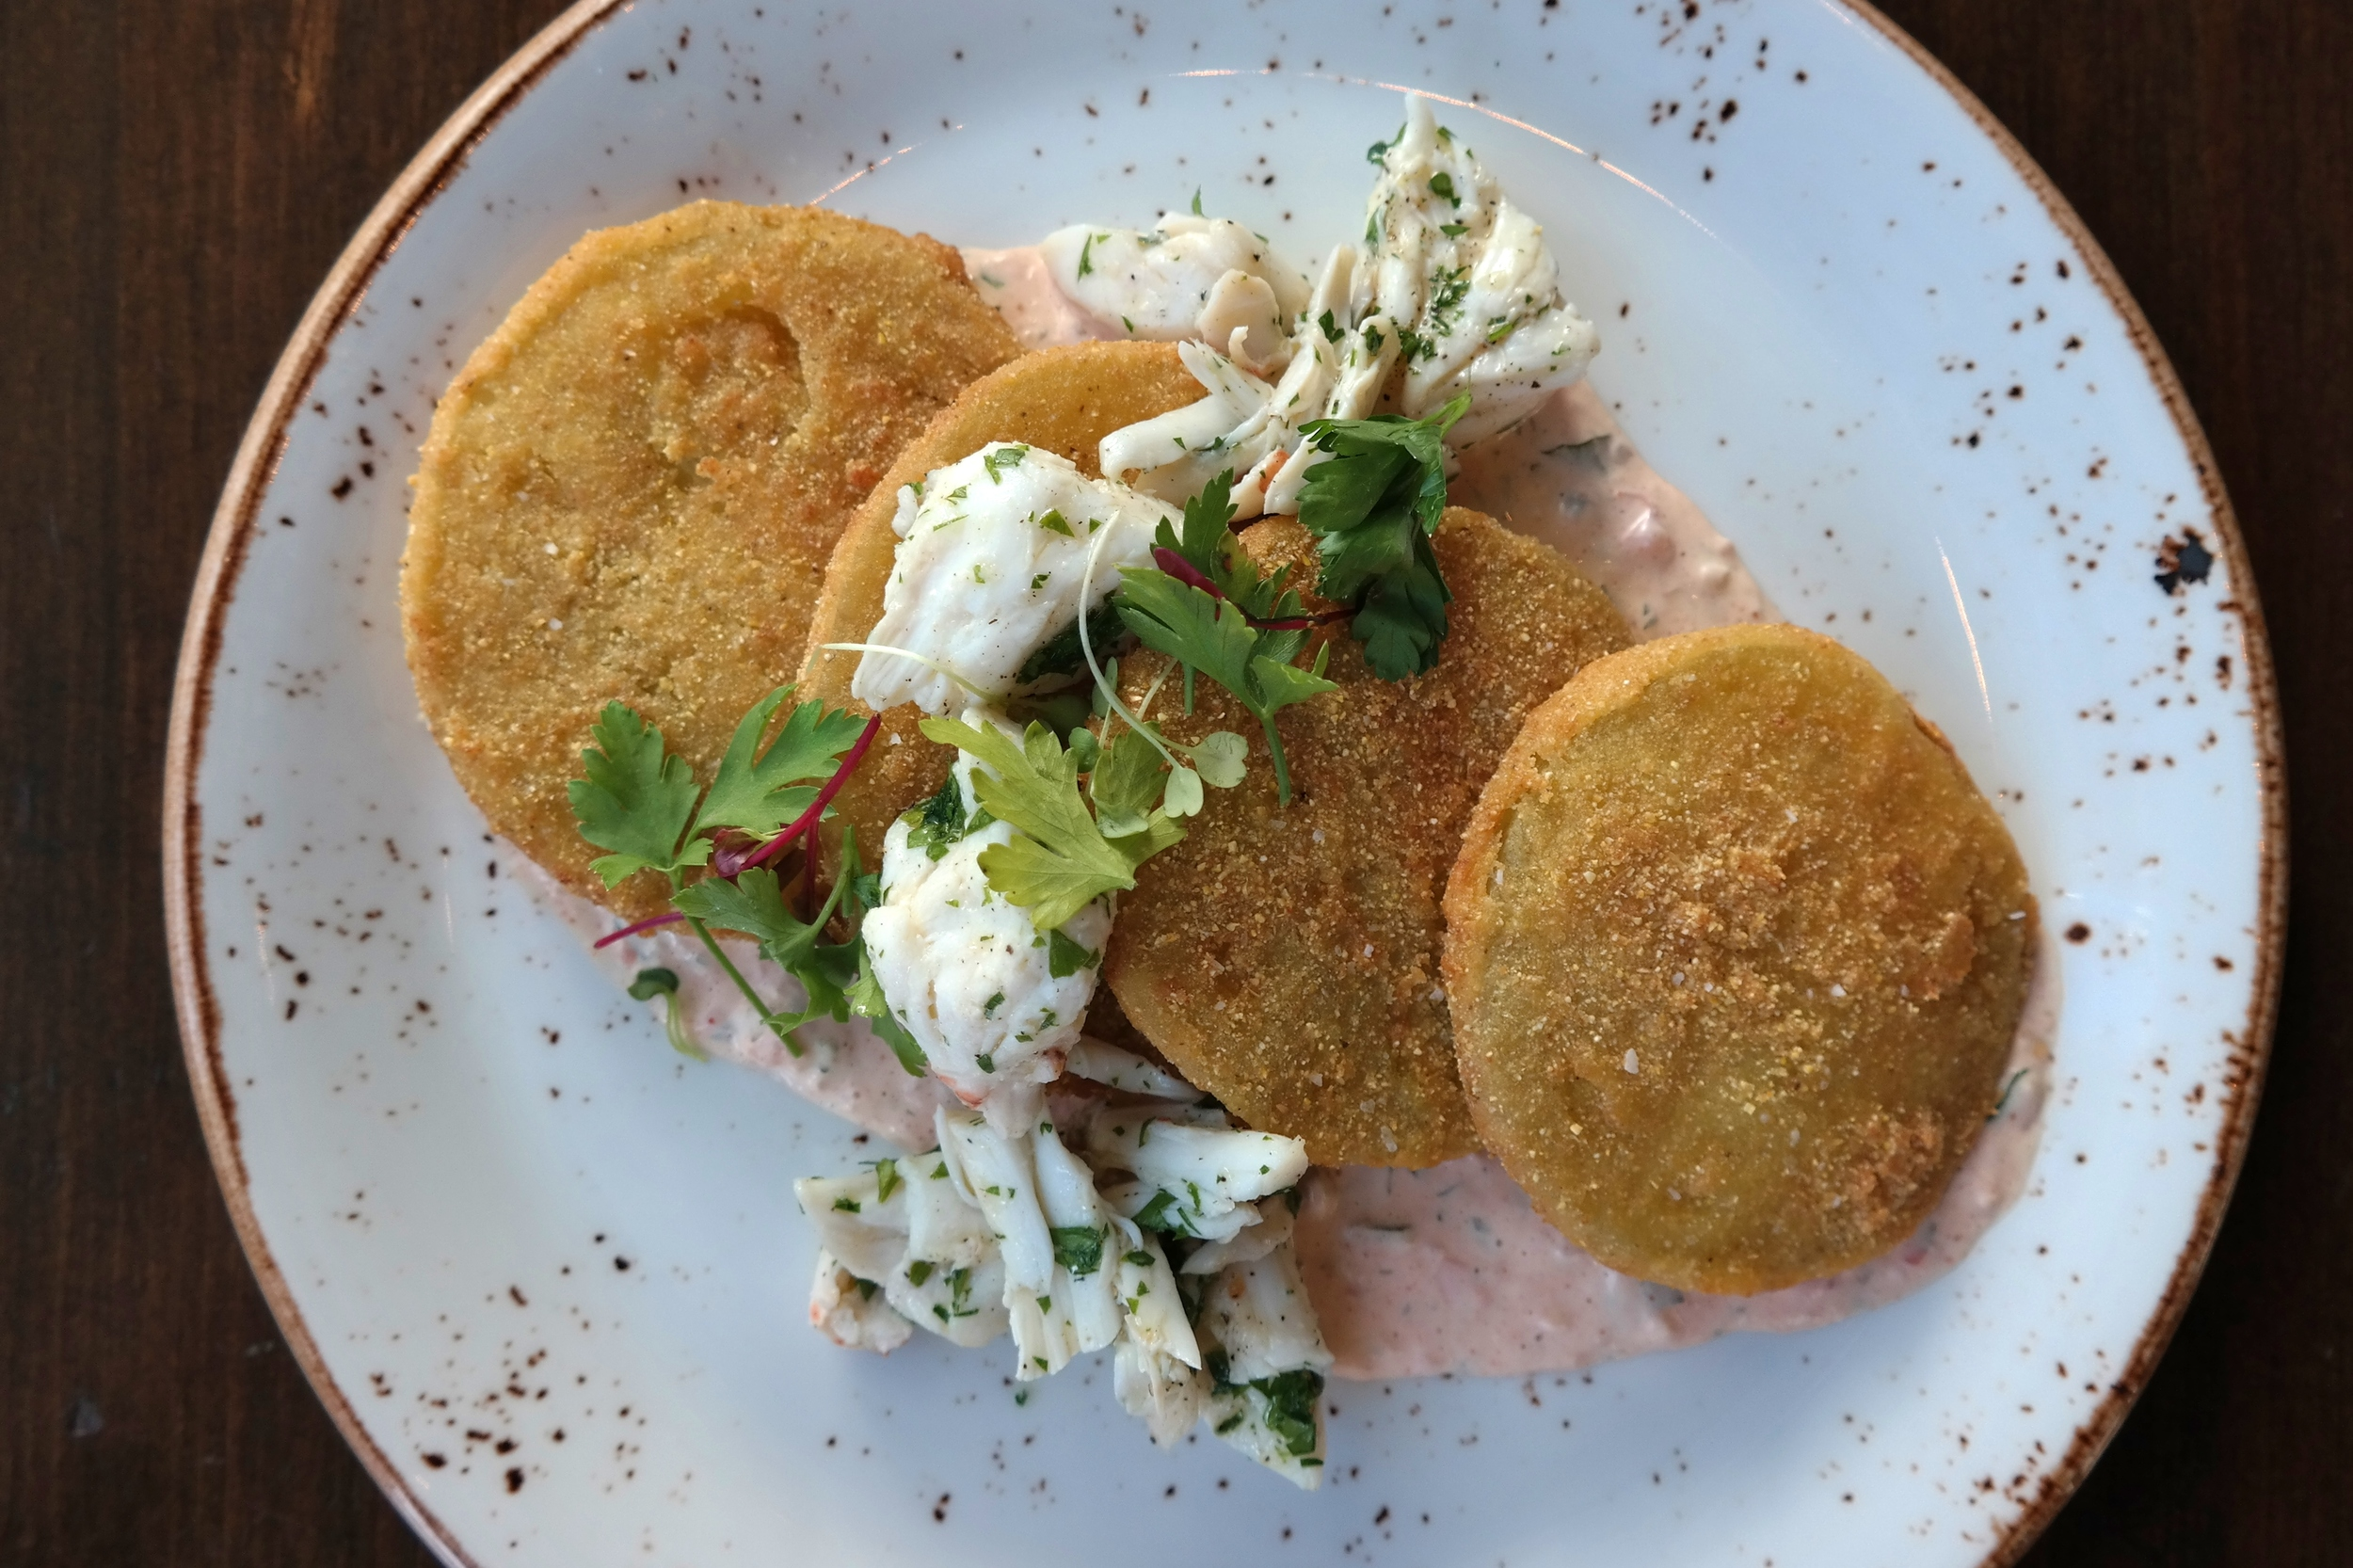 Fried green tomatoes with spicy remoulade and jumbo lump crab